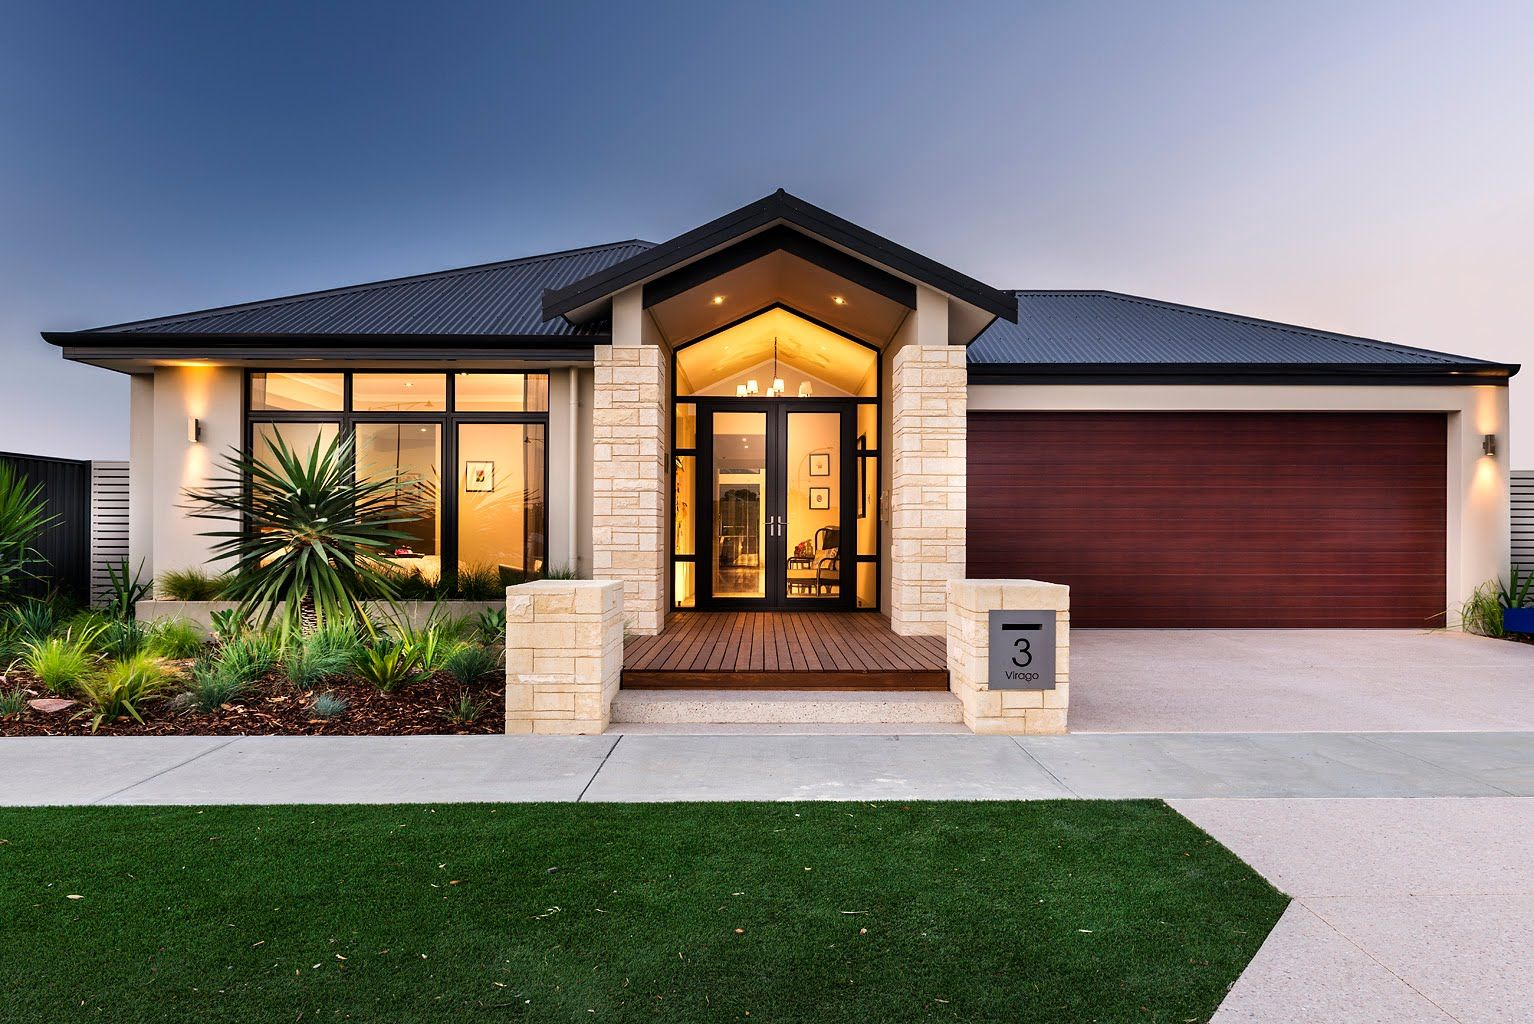 Eden Modern New Home Designs Dale Alcock Homes Houses And